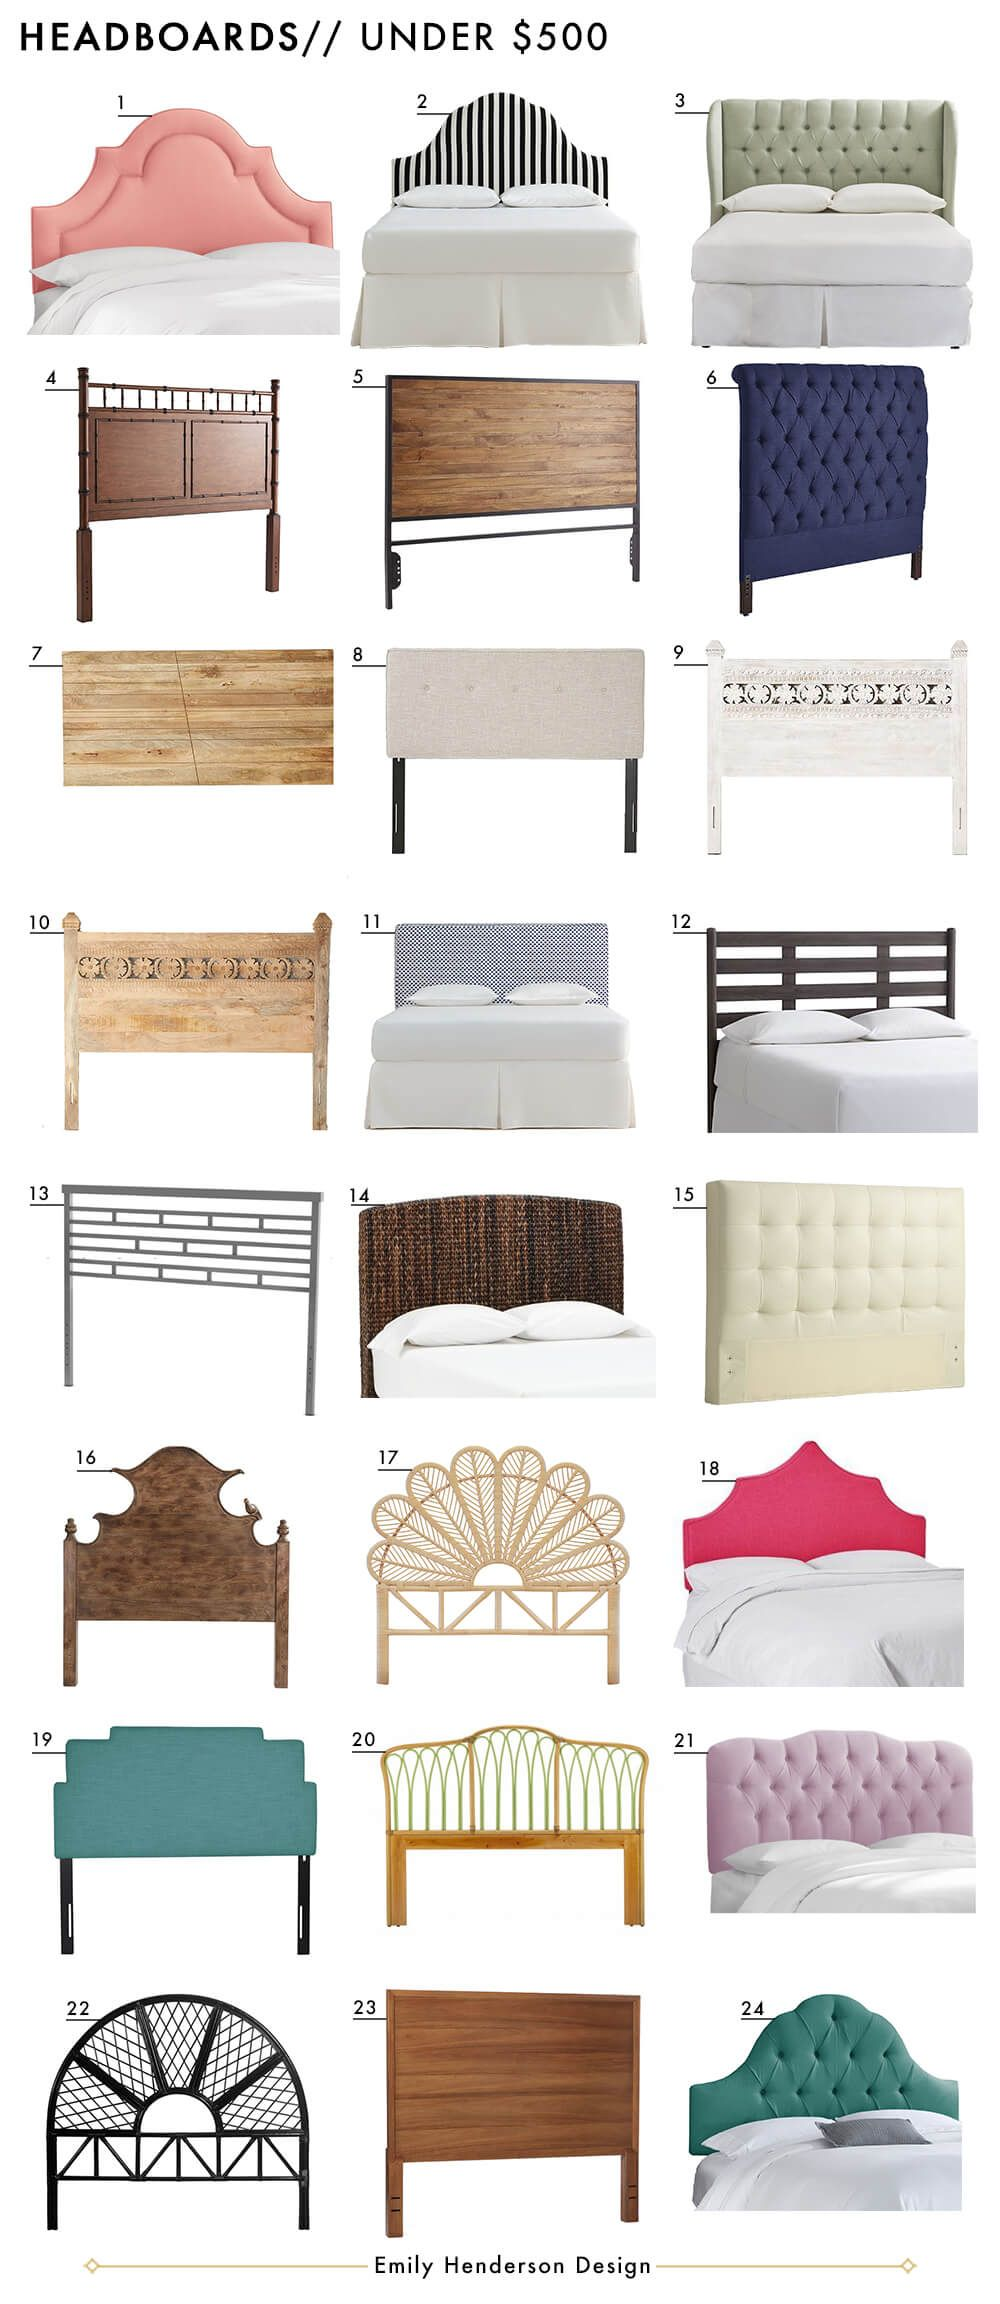 72 Affordable Headboards At Every Price Point Trendy Home Decor